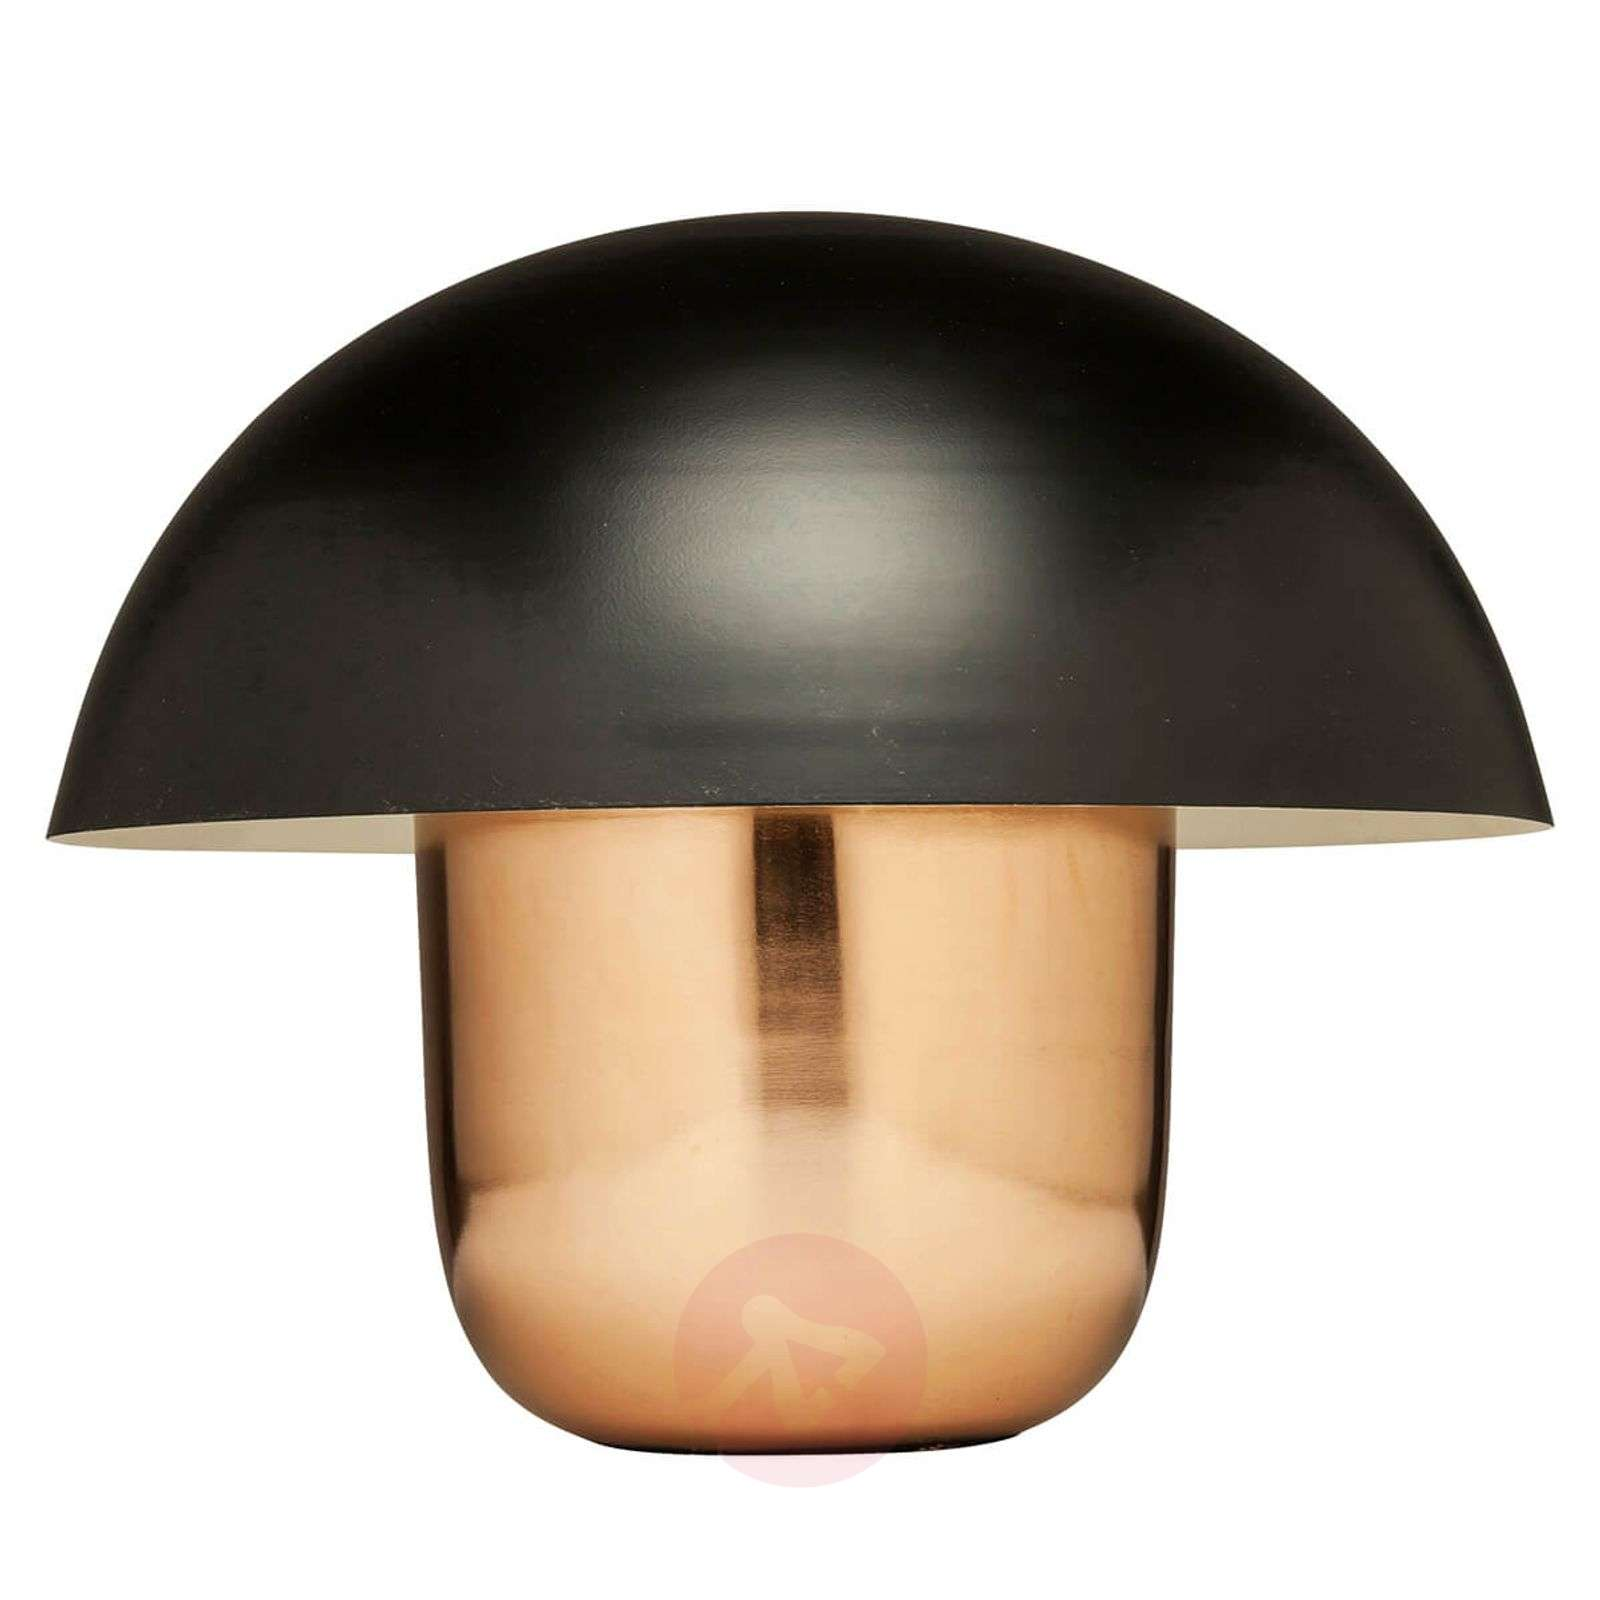 KARE Mushroom table lamp, copper-black-5517520-01